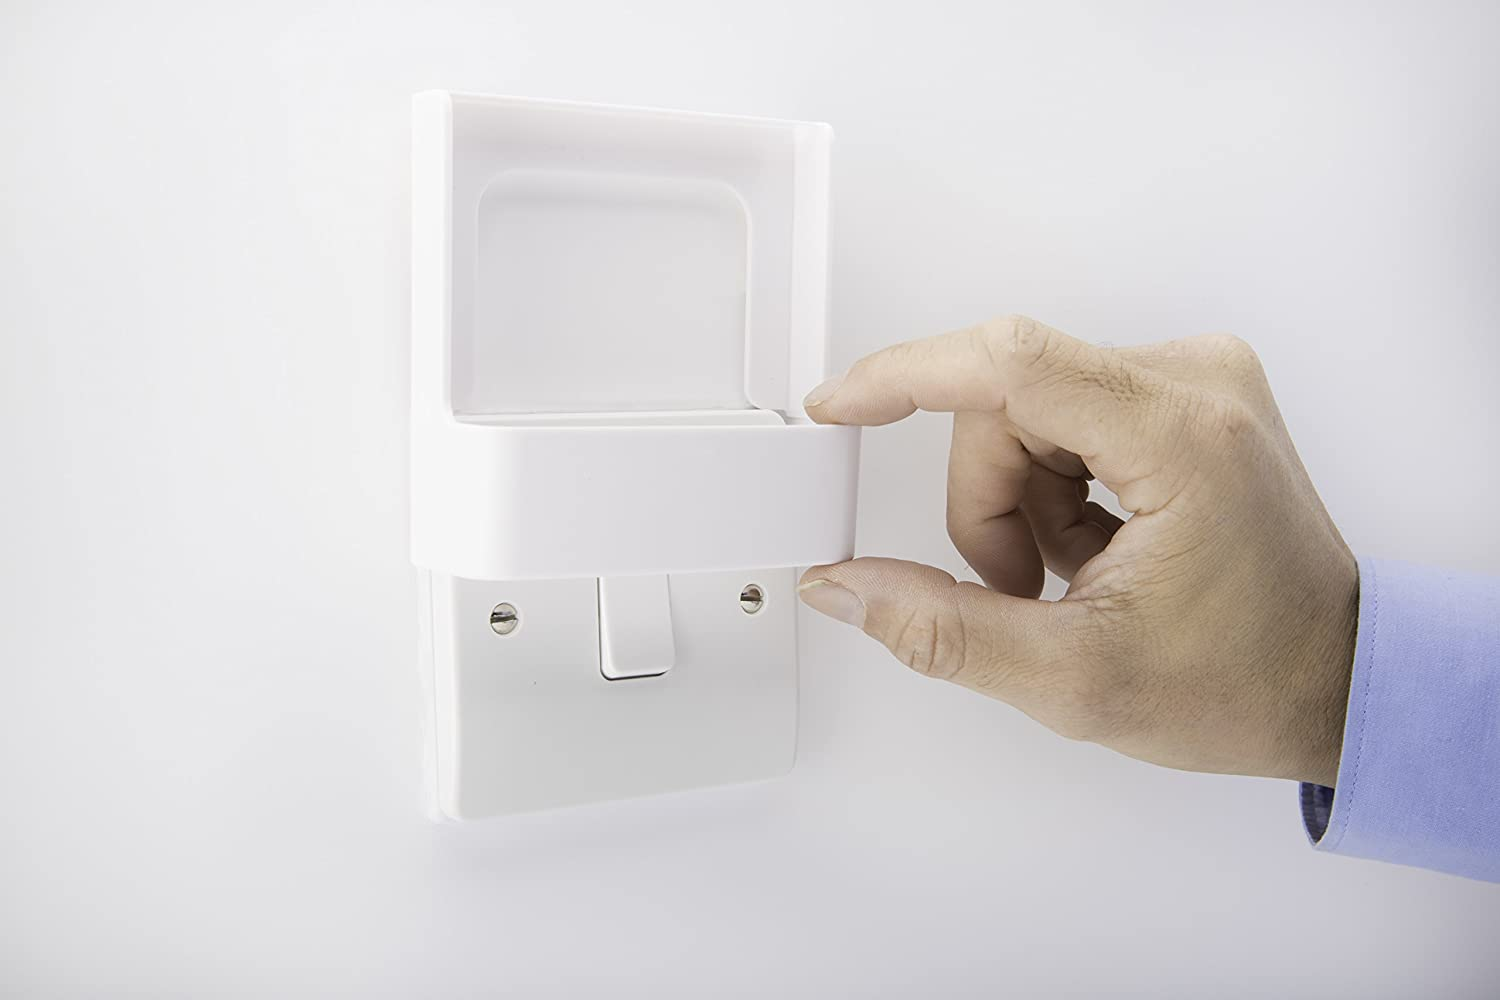 Light Switch Timer By Mydome Police Approved Retro Fit 3 Way No Wiring Home Security Burglar Deterrent Diy Tools